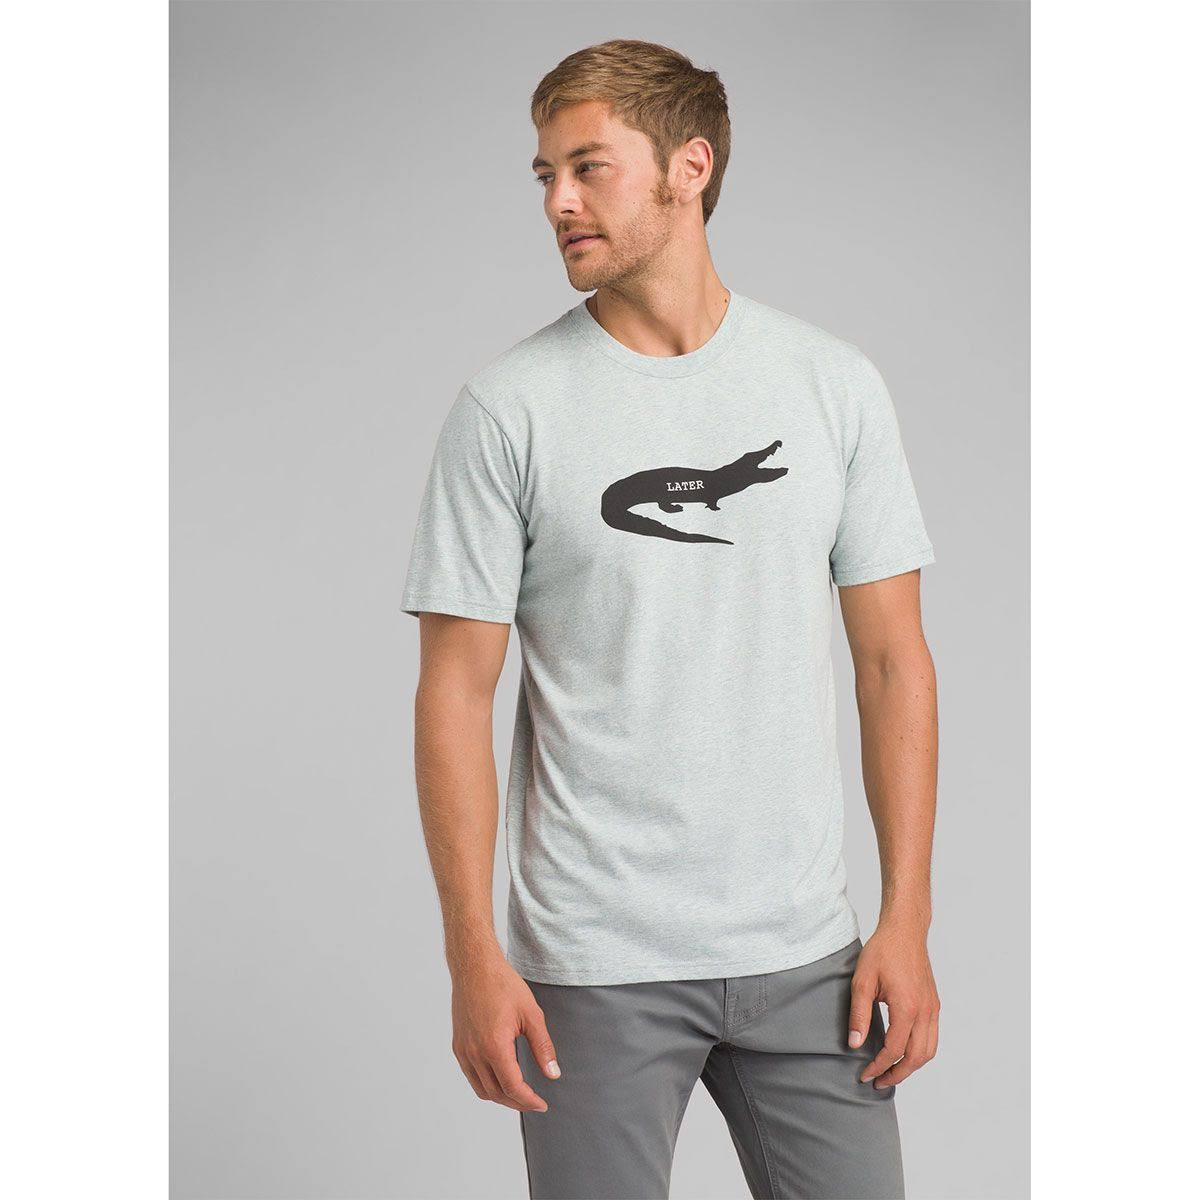 Camiseta Prana Heather Lateral L Journeyman Gator Gris Hombres Agave ffFrqBn1